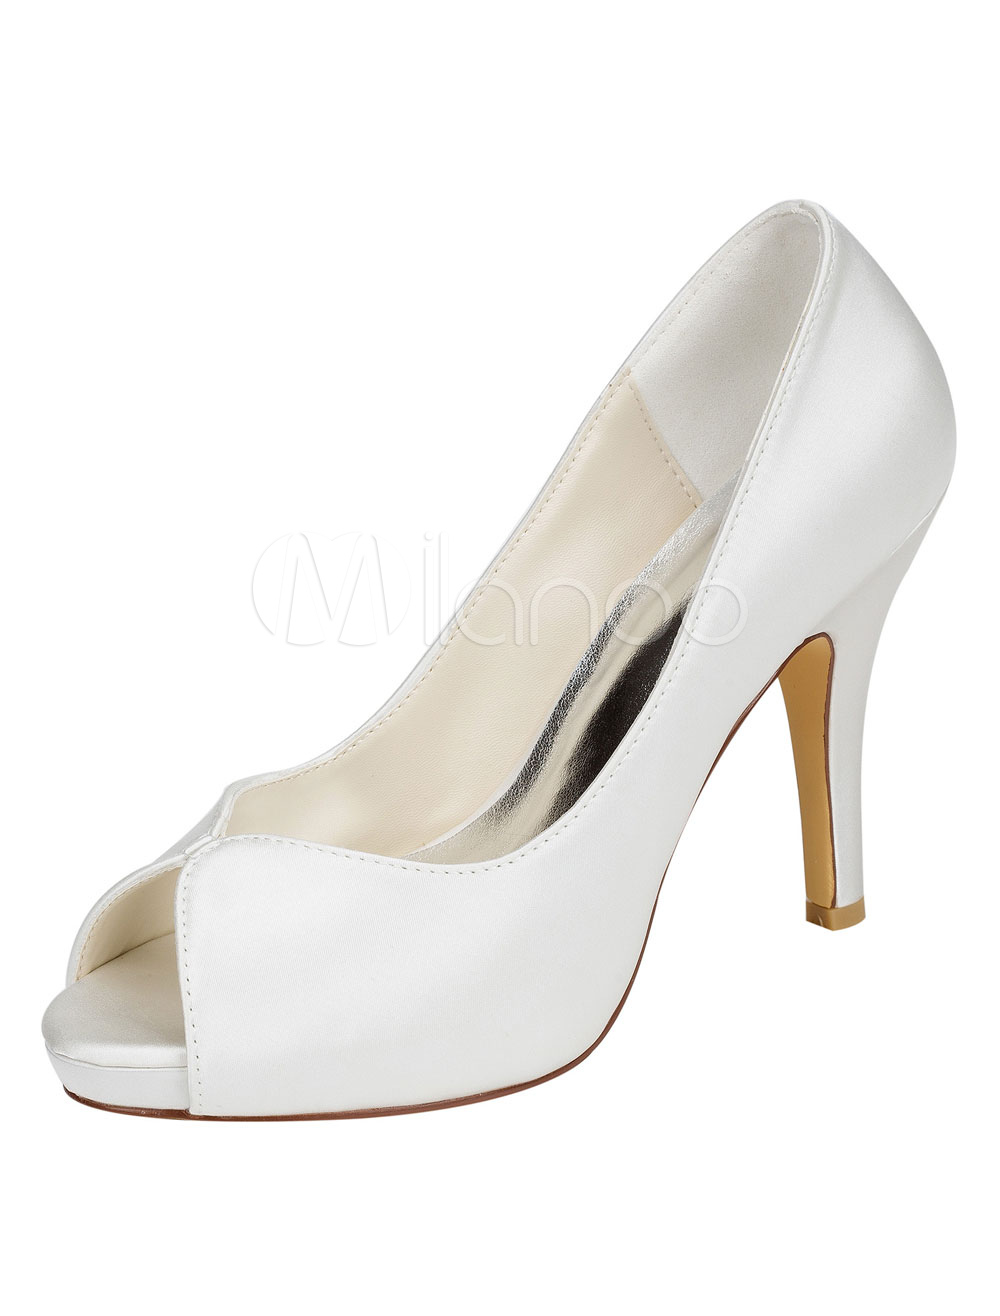 Buy Ivory Bridal Shoes Silk High Heel Platform Peep Toe Slip On Pumps For Wedding for $53.19 in Milanoo store